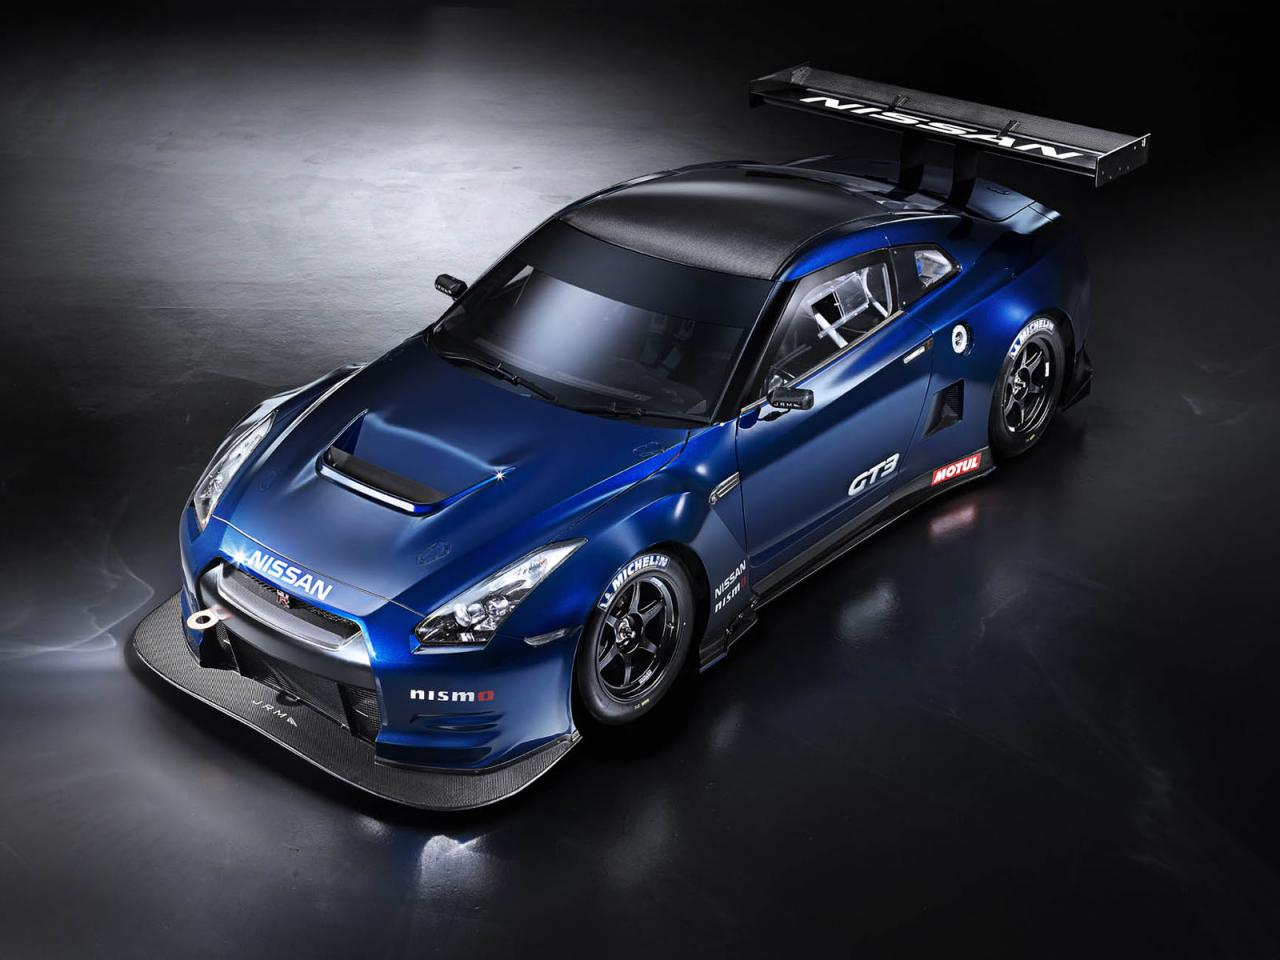 Nissan GT-R Nismo GT3 Ready To Race